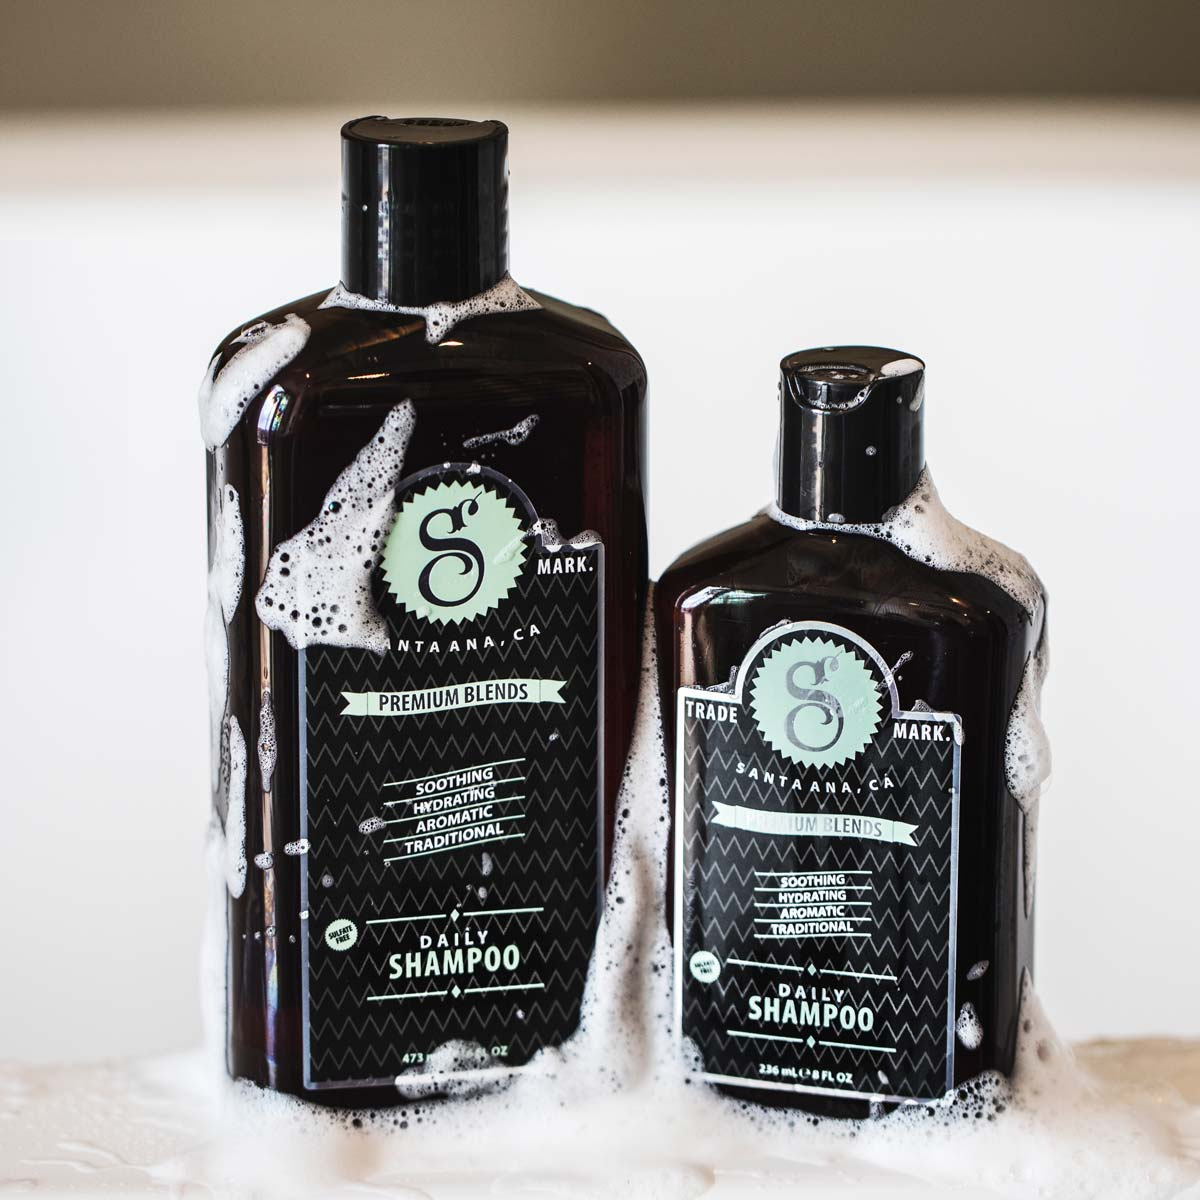 Premium Blends Daily Shampoo